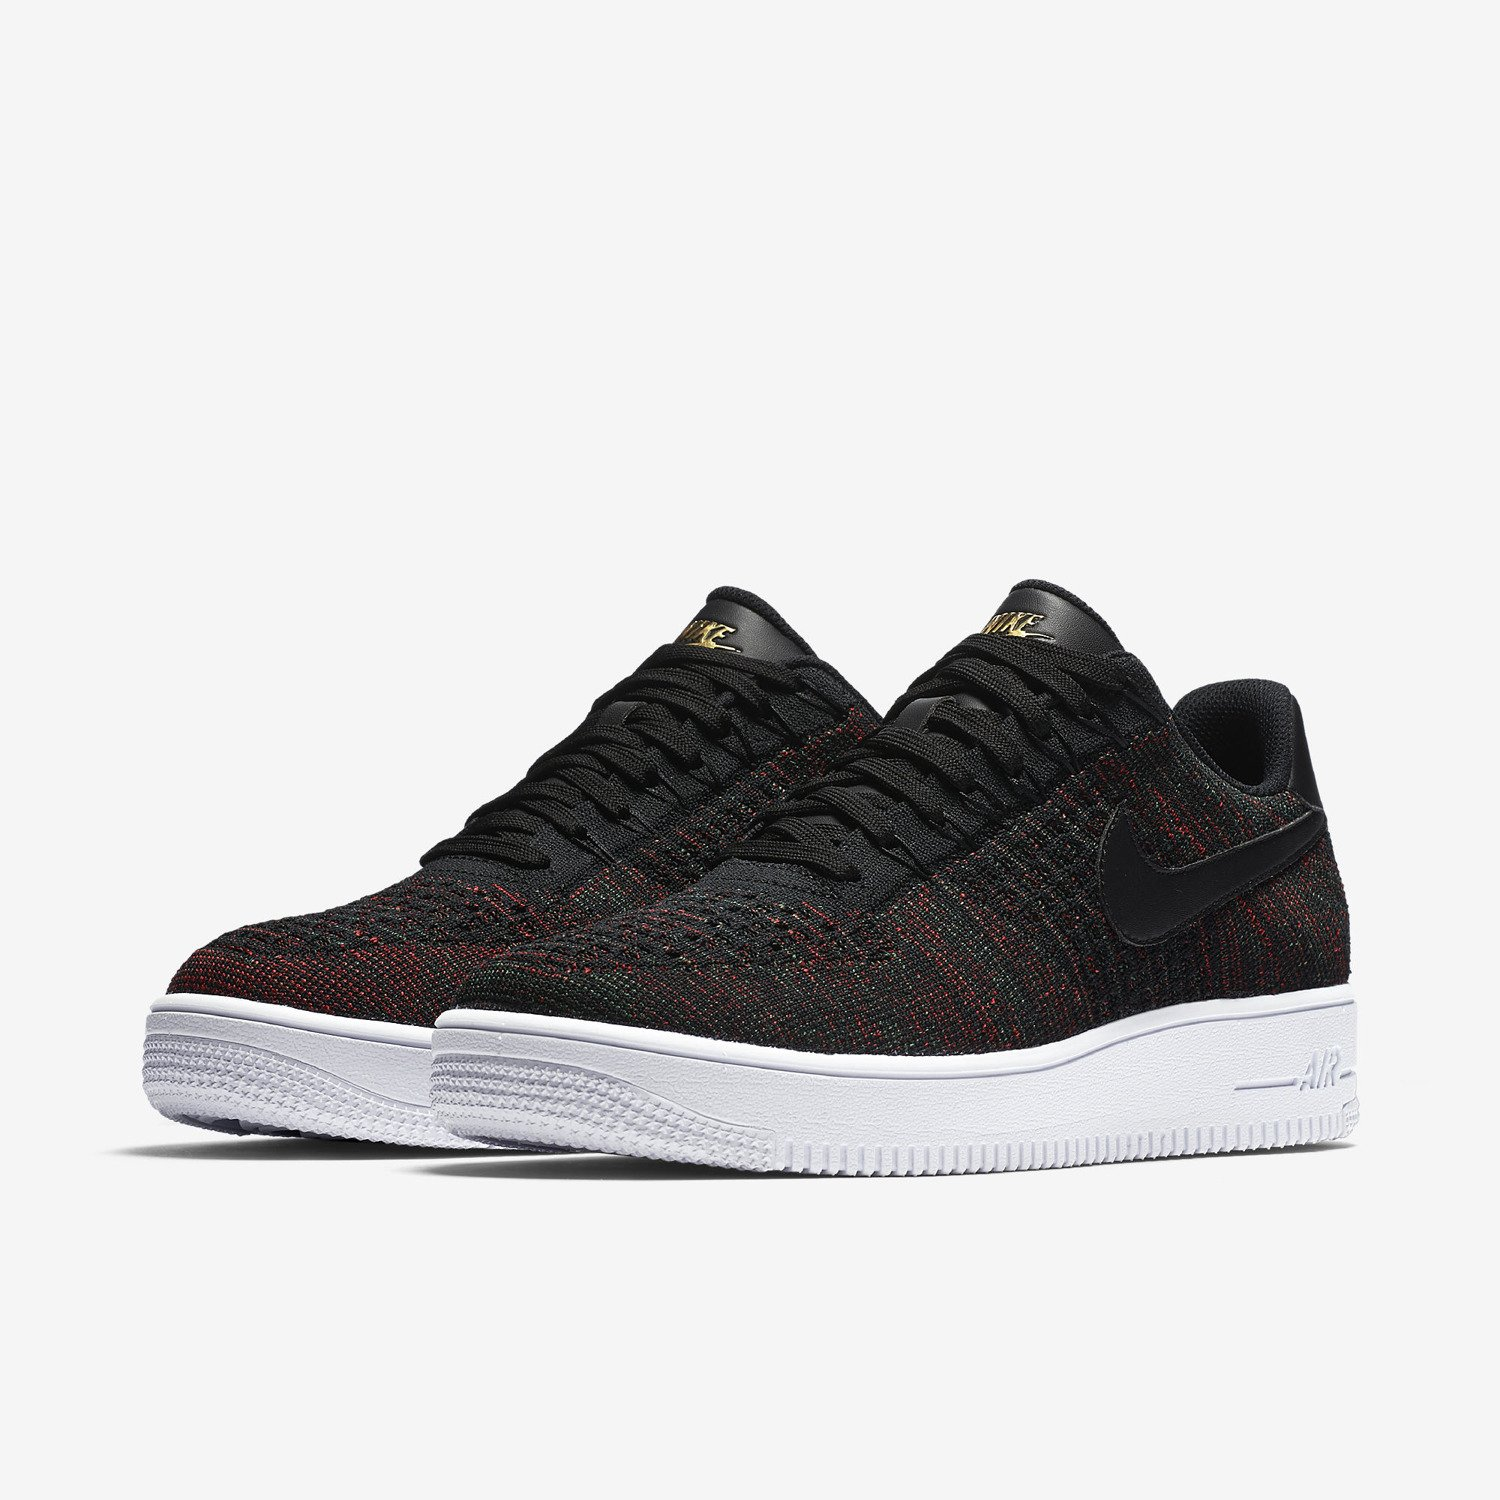 Nike Air Force 1 Ultra Flyknit Low Black Dark Grey White NSW HTM Lifestyle  Shoes 820256 9bbf26021034